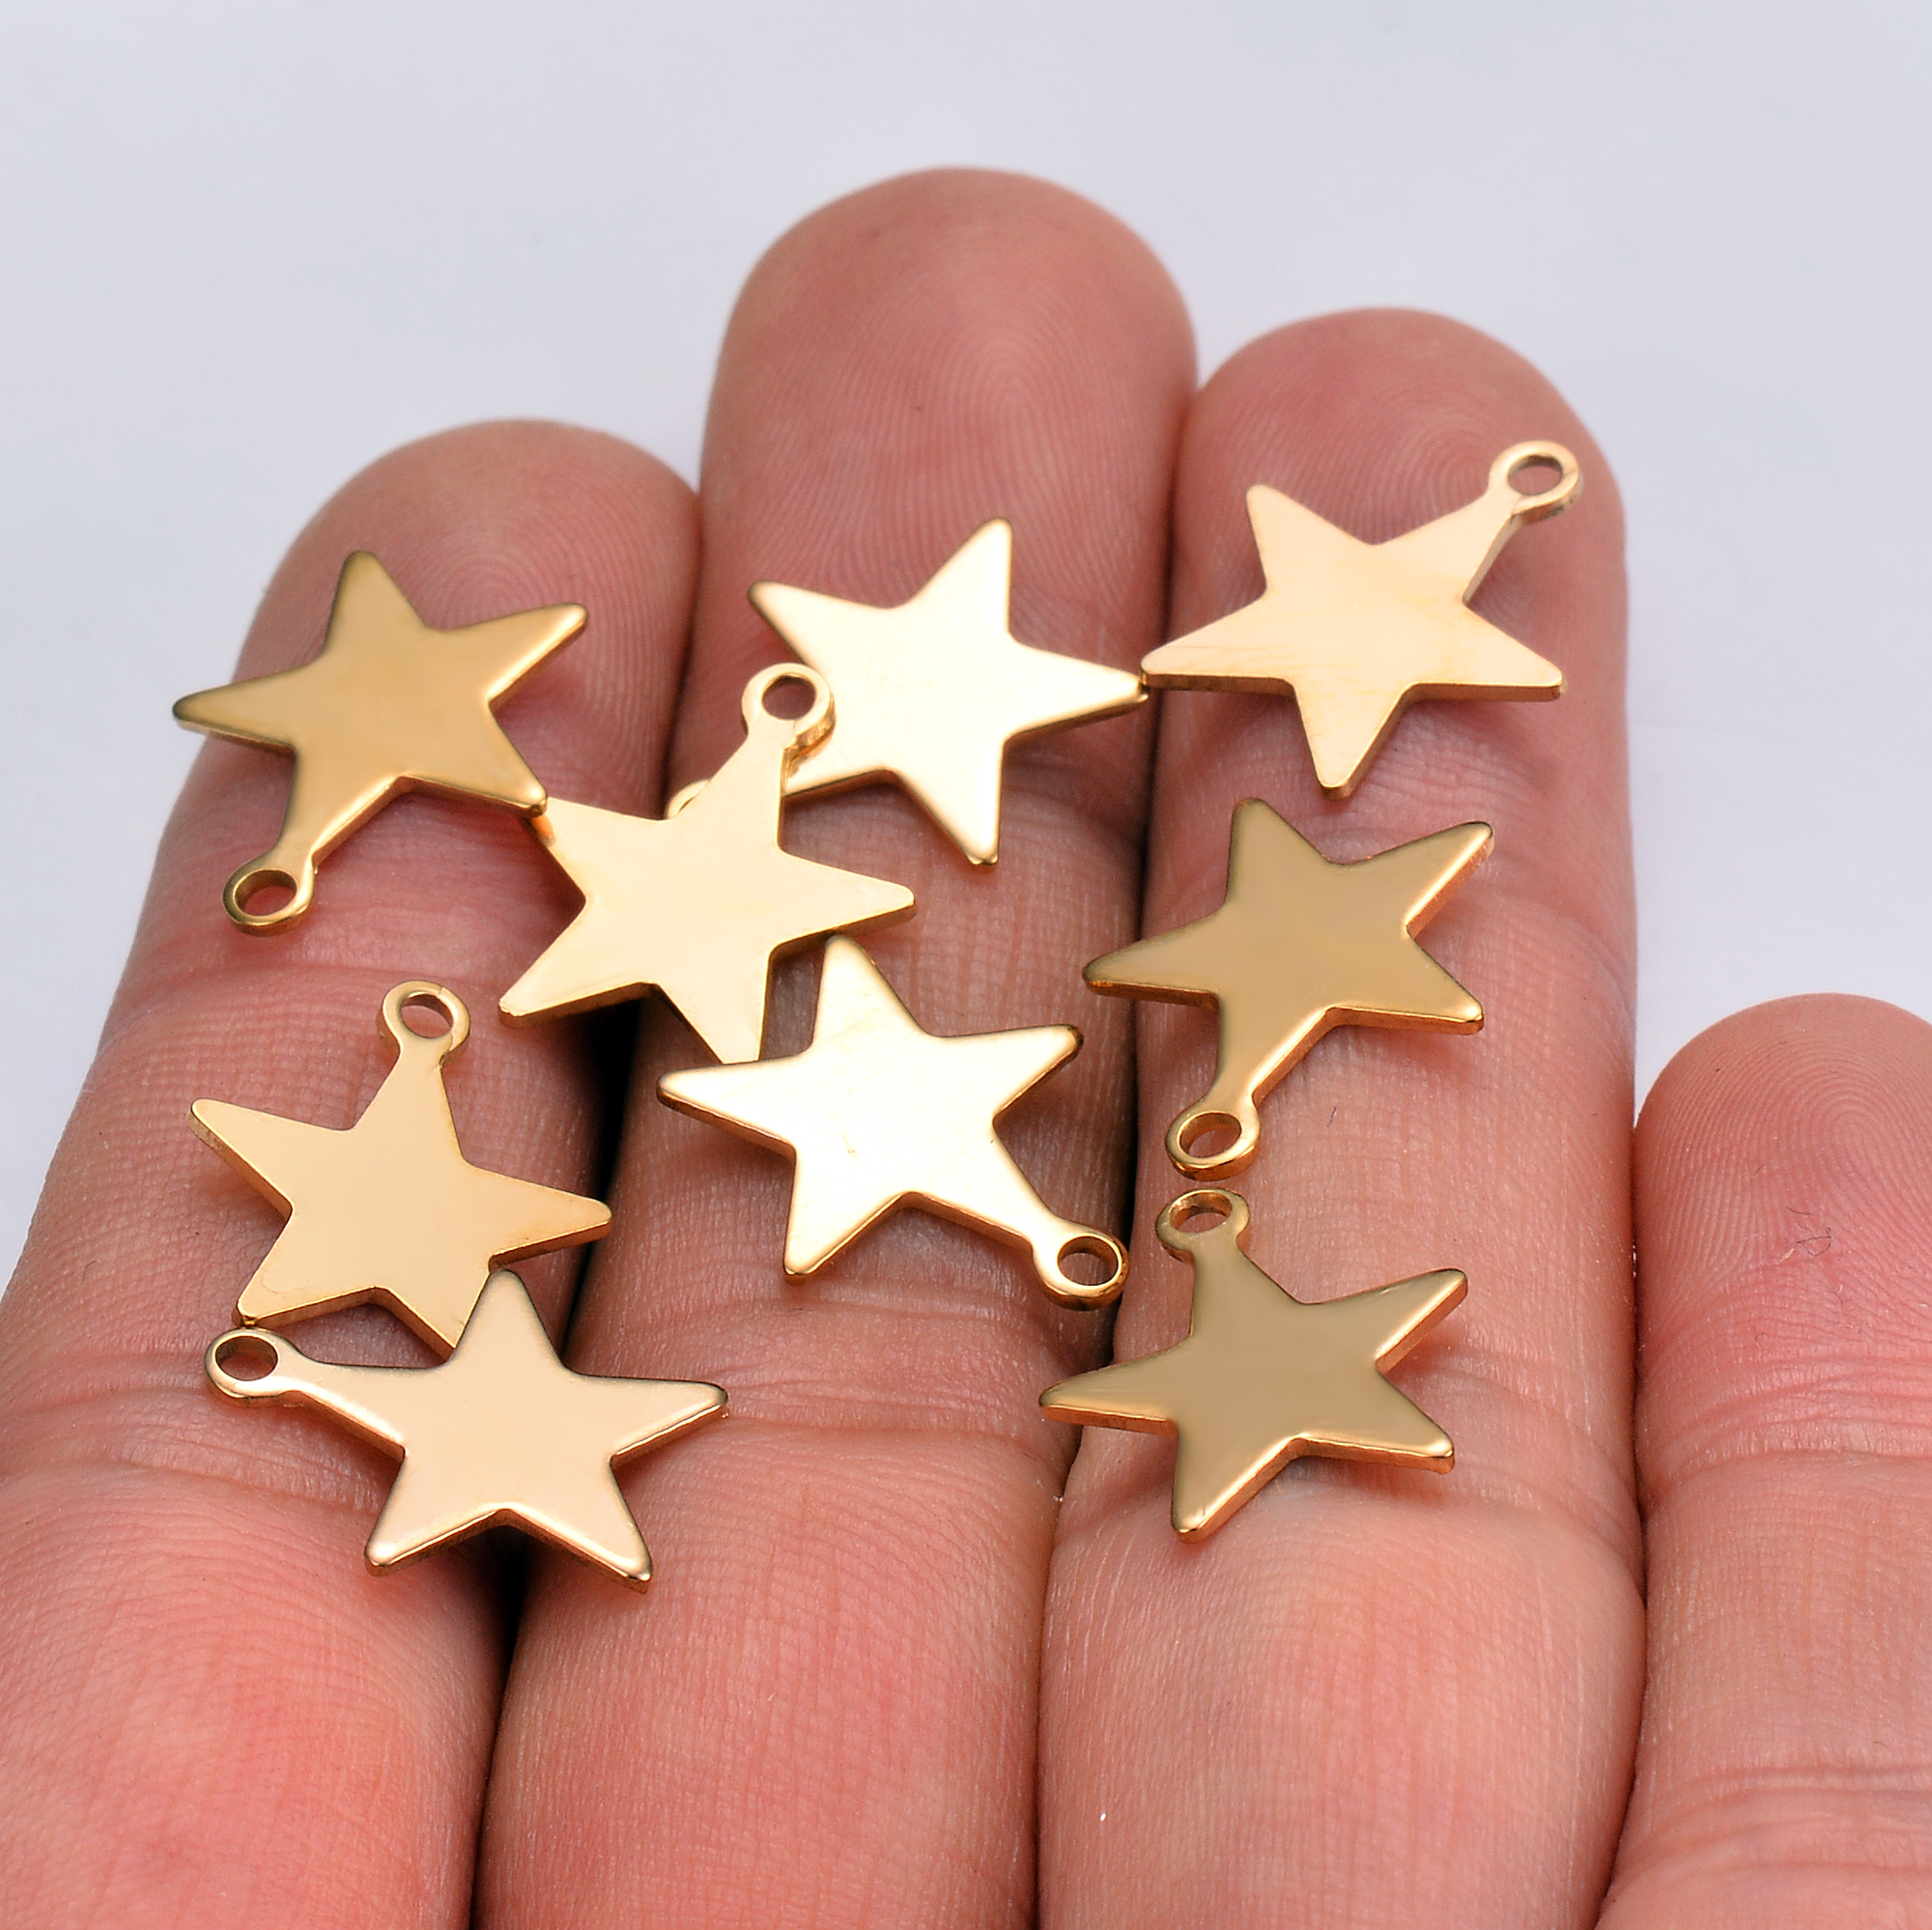 20 Pcs Gold Tone Stainless Steel Small Star Jewelry Charm,DIY Jewelry Makings ,Hypoallergenic And Not Turn Off Color